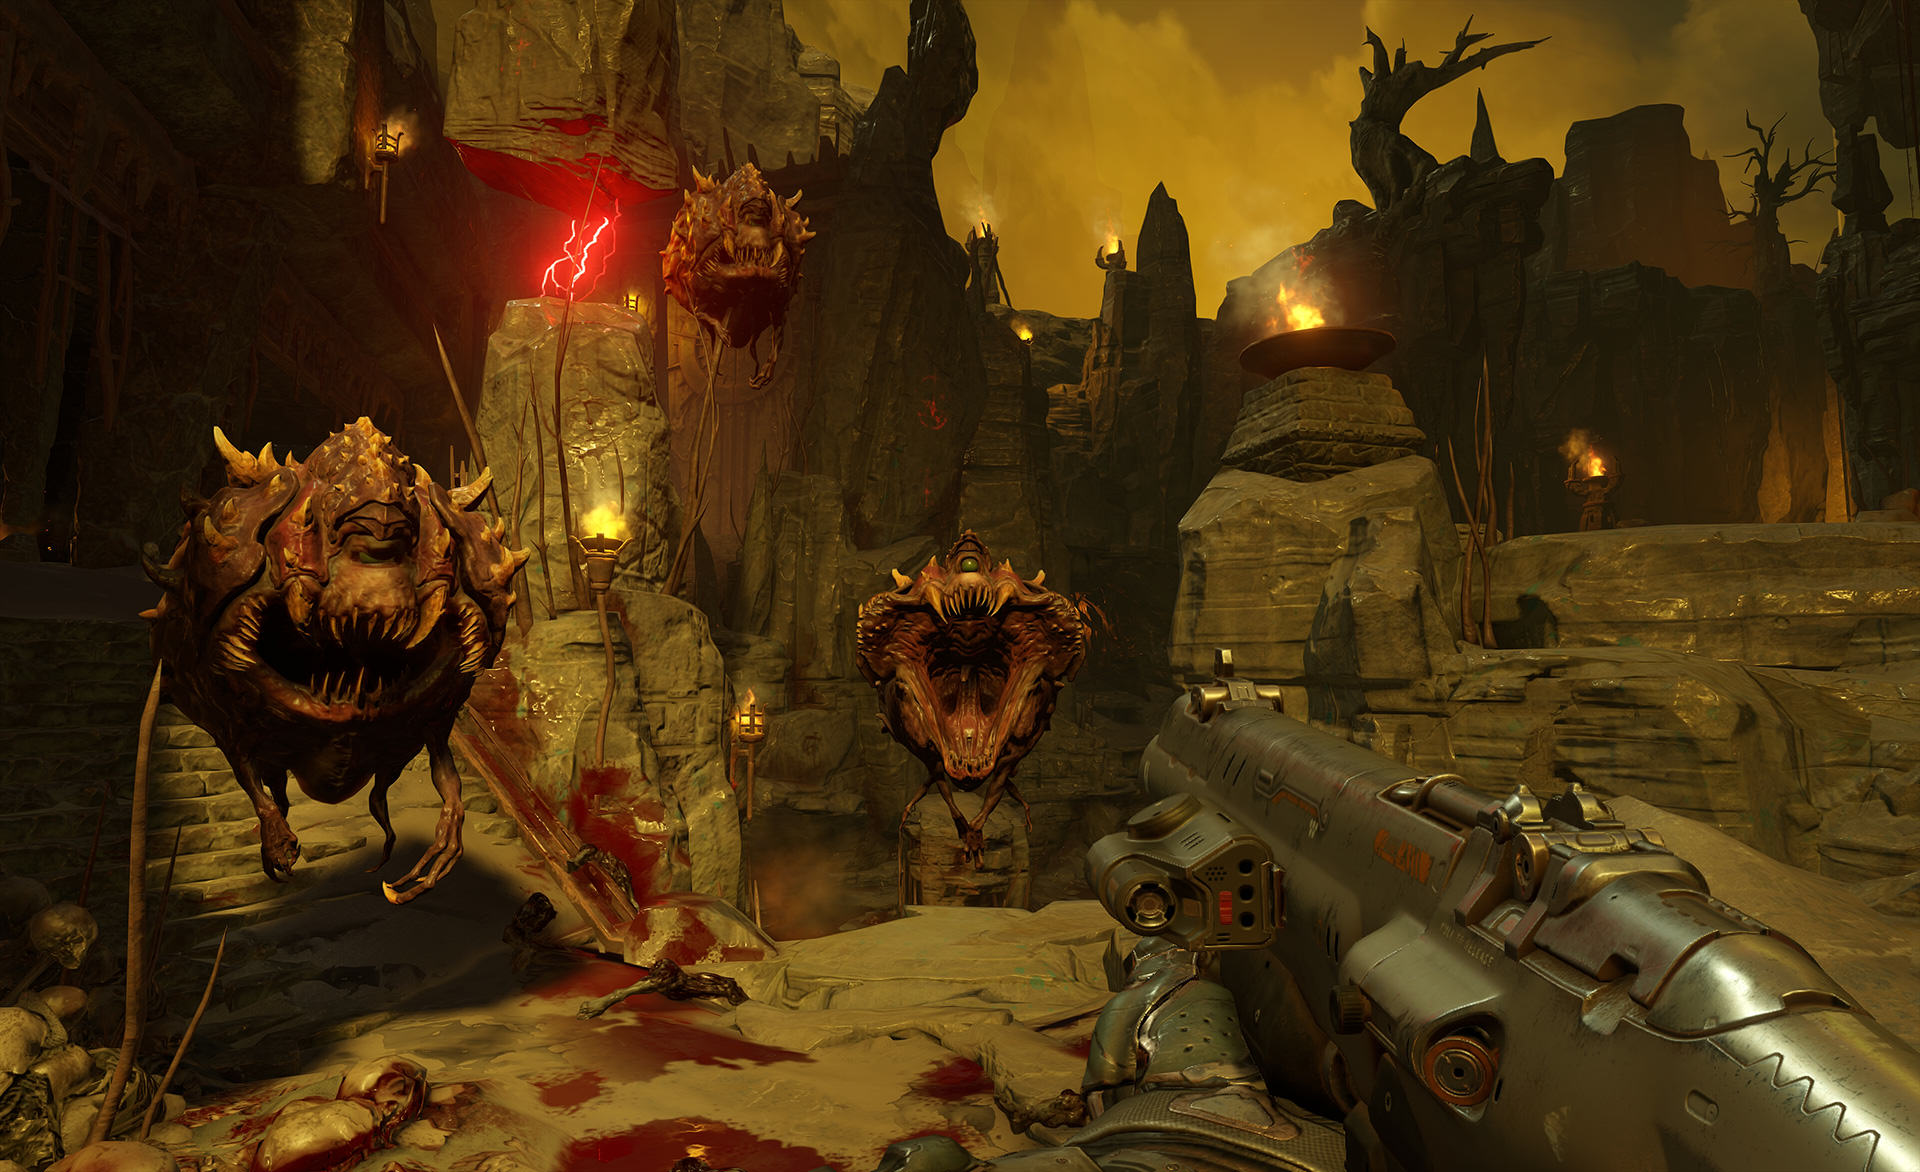 DOOM Higher Difficulty And Non Linear Exploration Confirmed doom cacodemons screenshot 1920.0